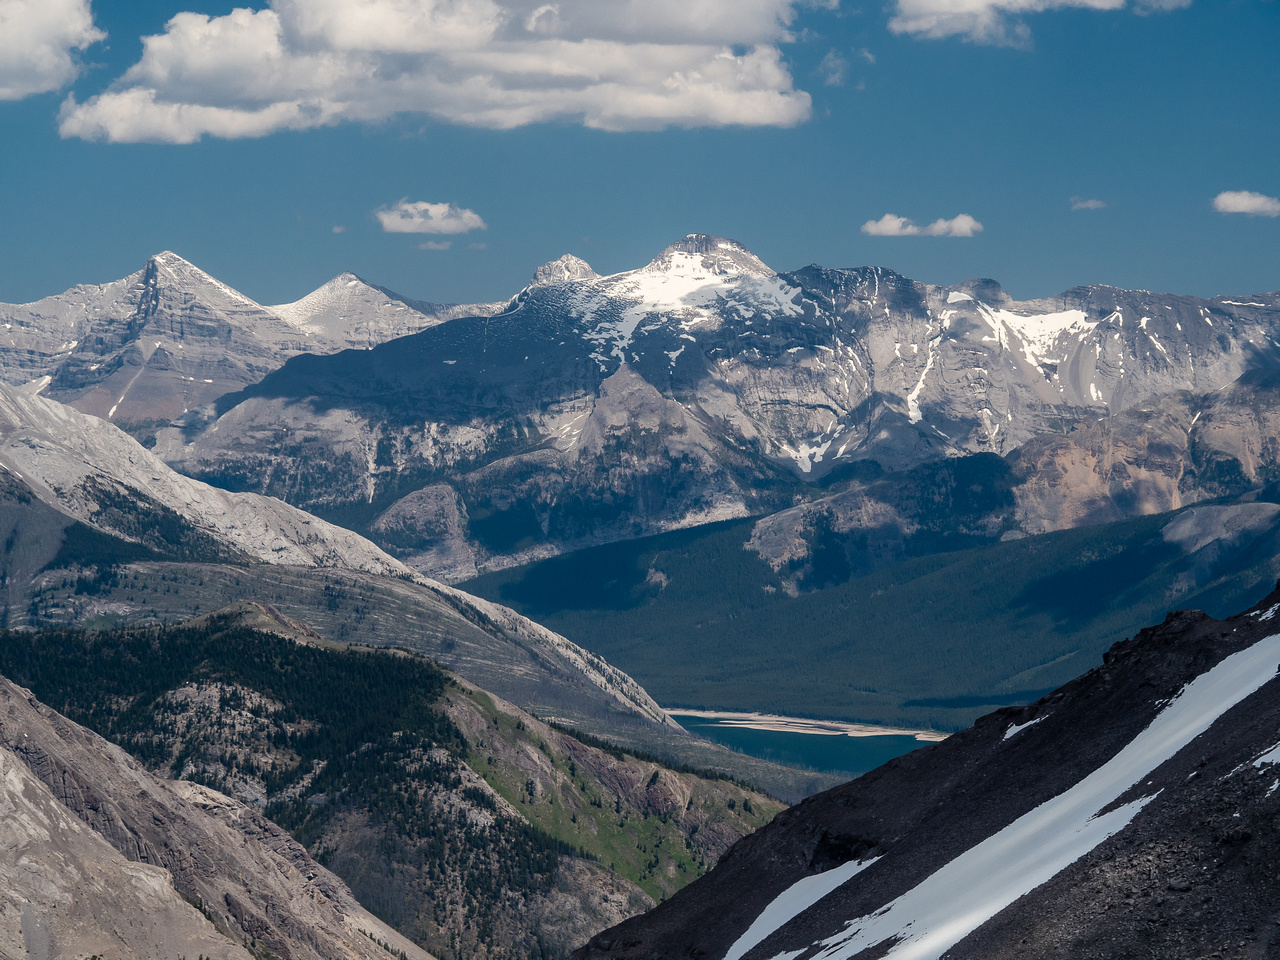 Only a slice of the Spray Lakes can be seen now - Lougheed and Sparrowhawk rising beyond.